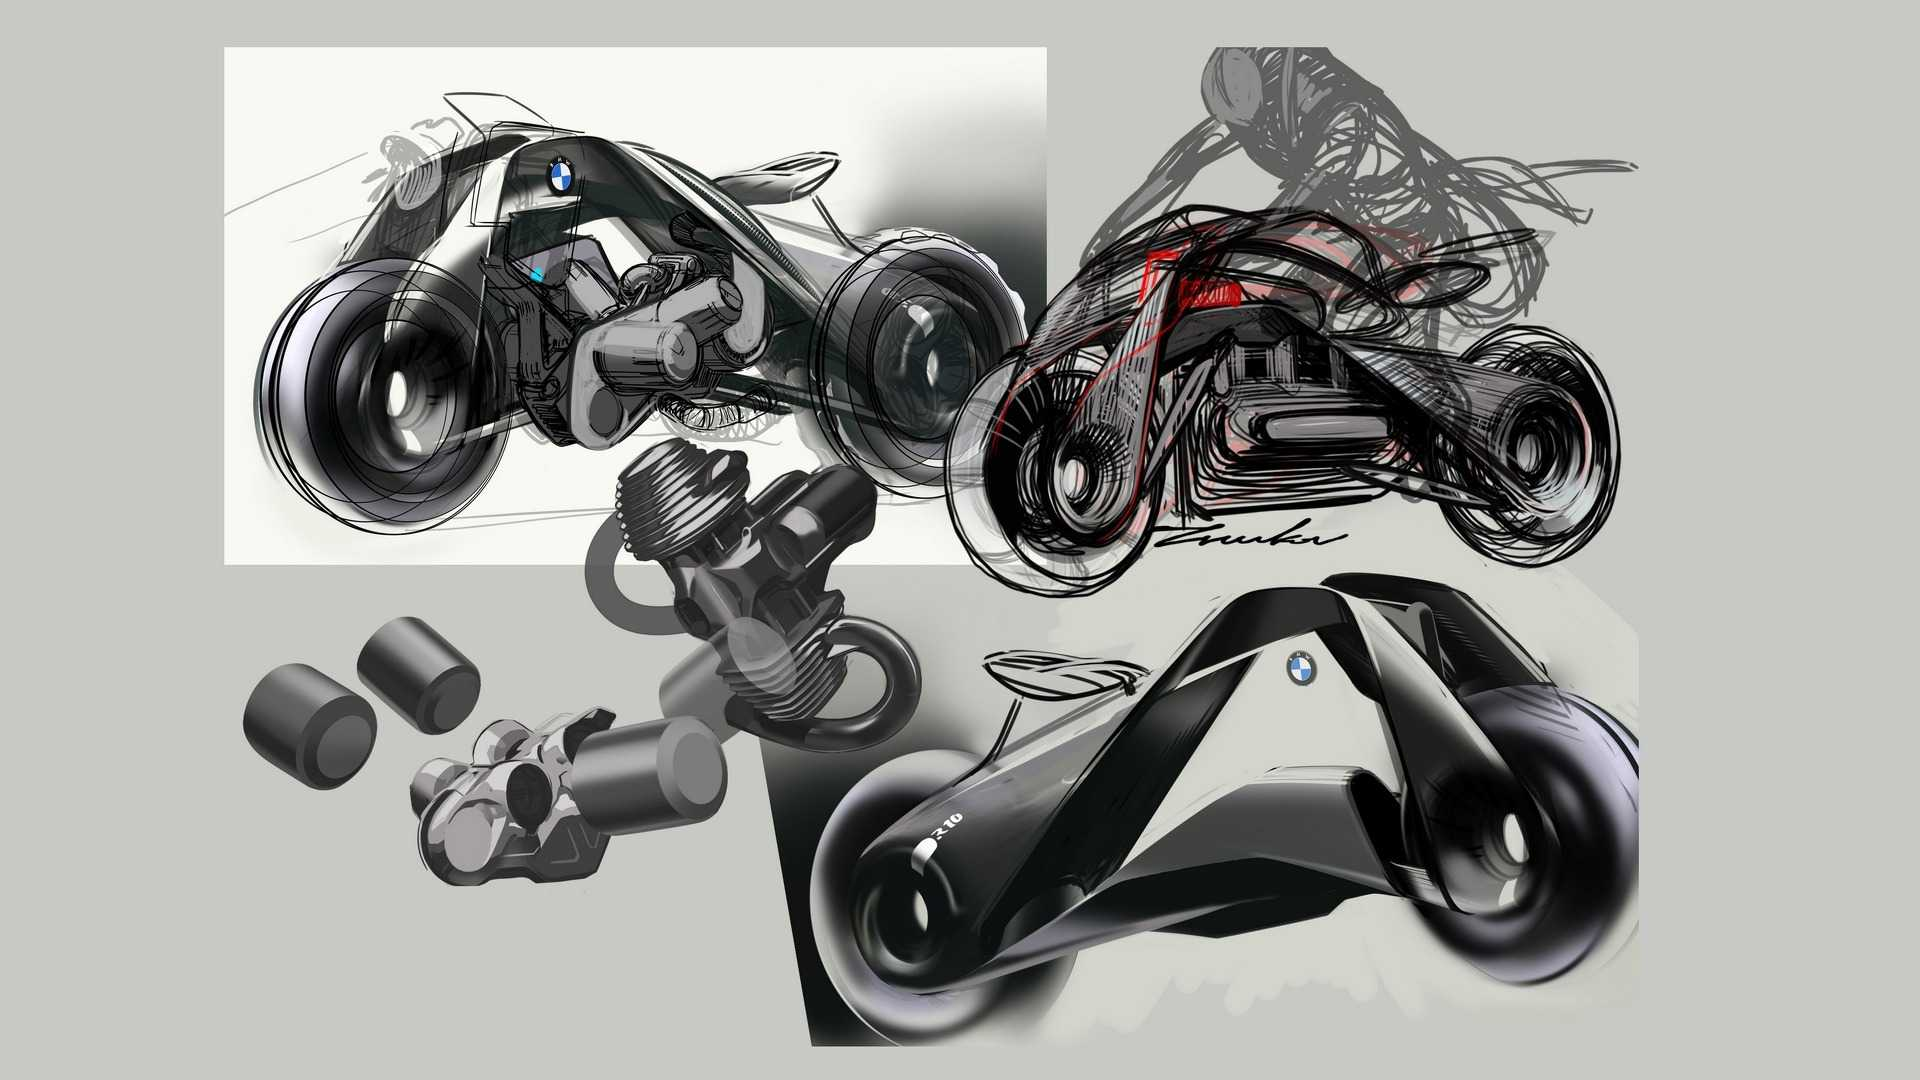 bmw's self-balancing motorcycle of tomorrow | wheels guru